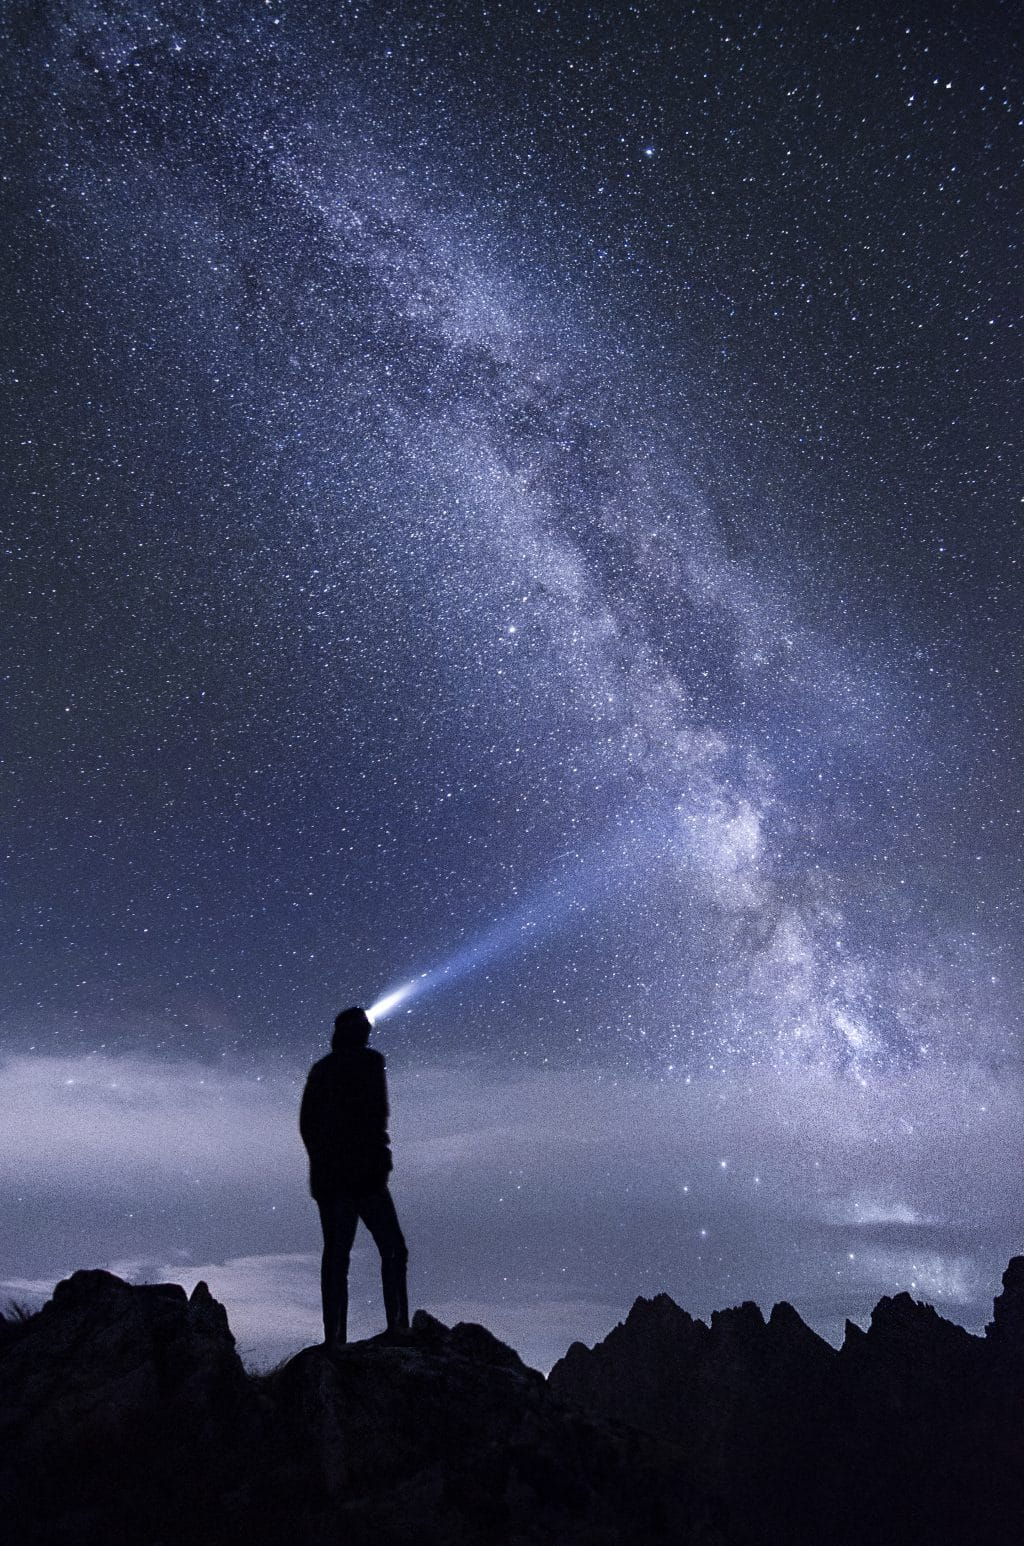 Man with torch in front of Milky Way